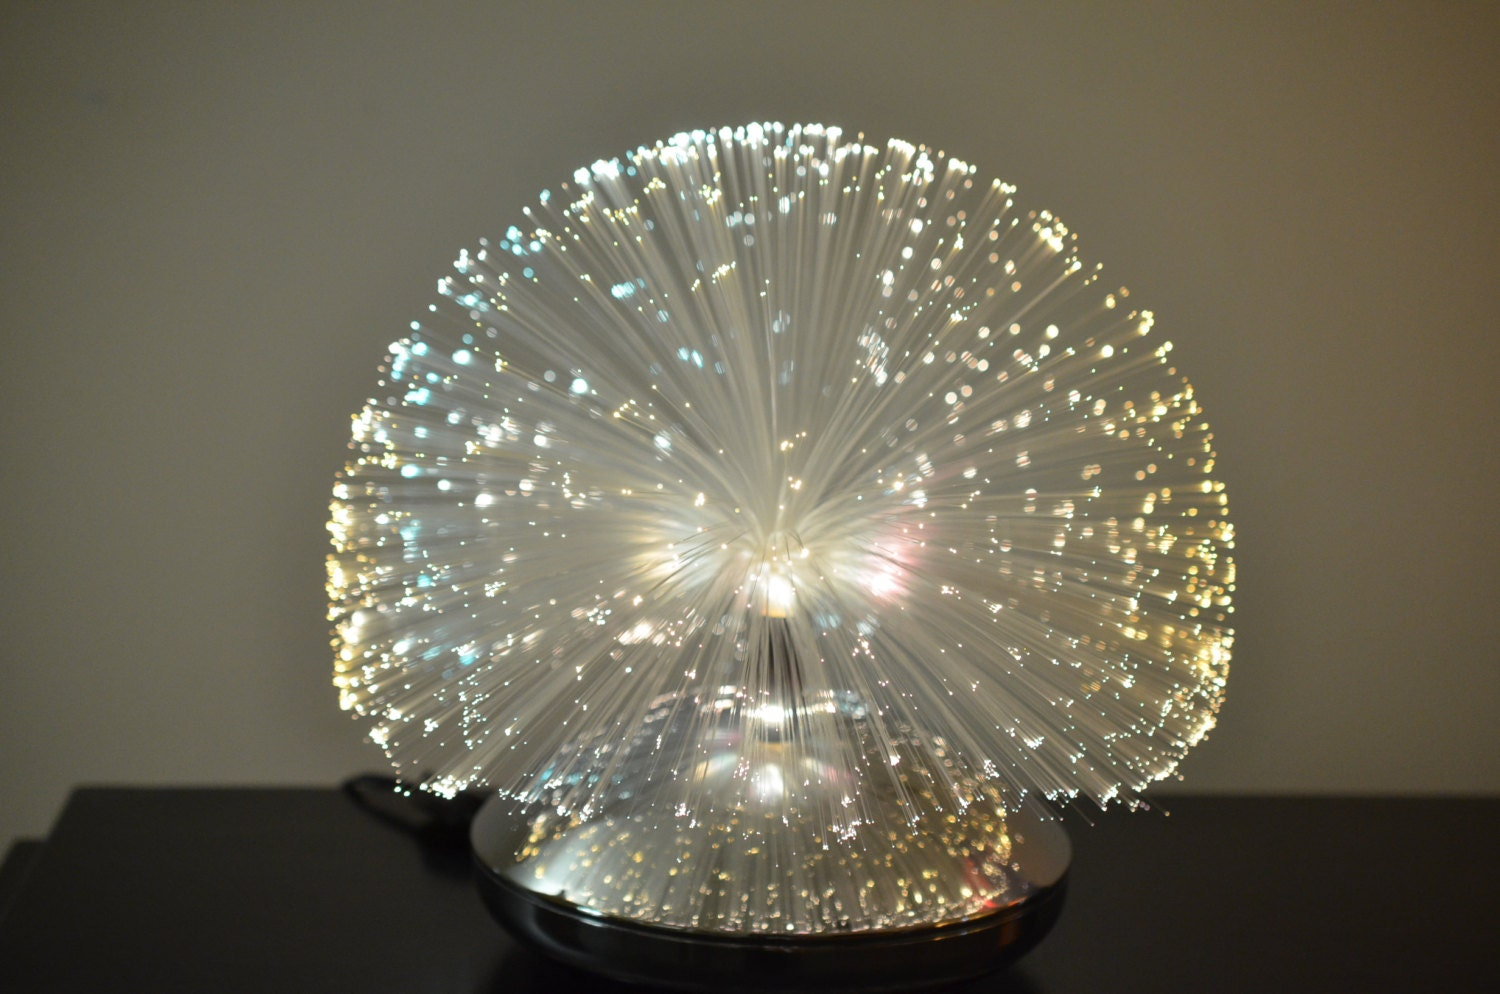 1970 S Fantasia Fiber Optic Lamp Galaxy Model 2001 By